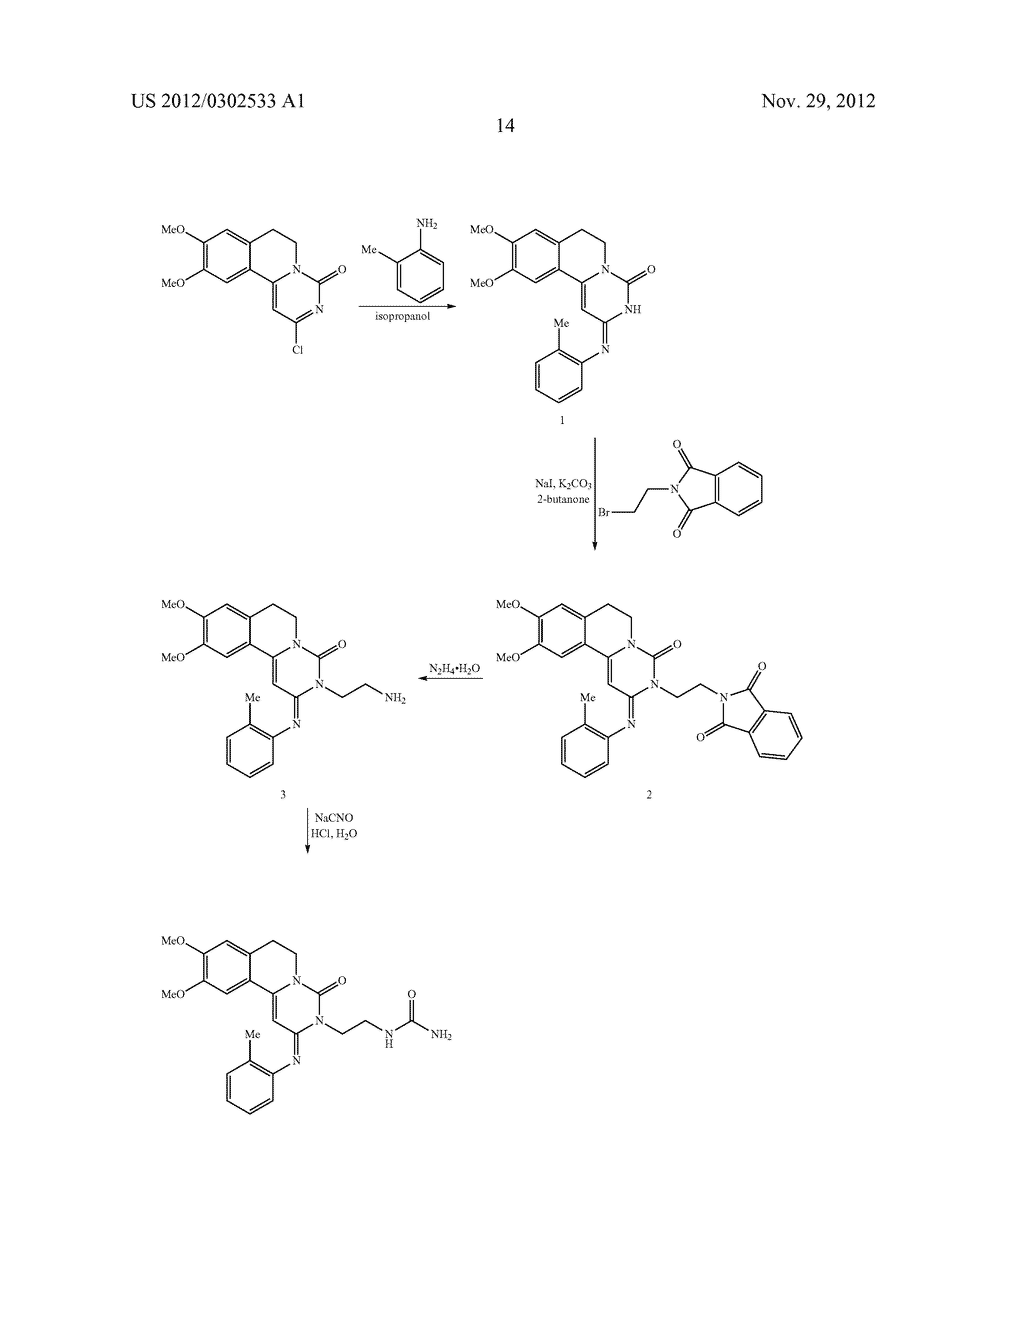 DERIVATIVES OF PYRIMIDO [6,1-A] ISOQUINOLIN-4-ONE - diagram, schematic, and image 20